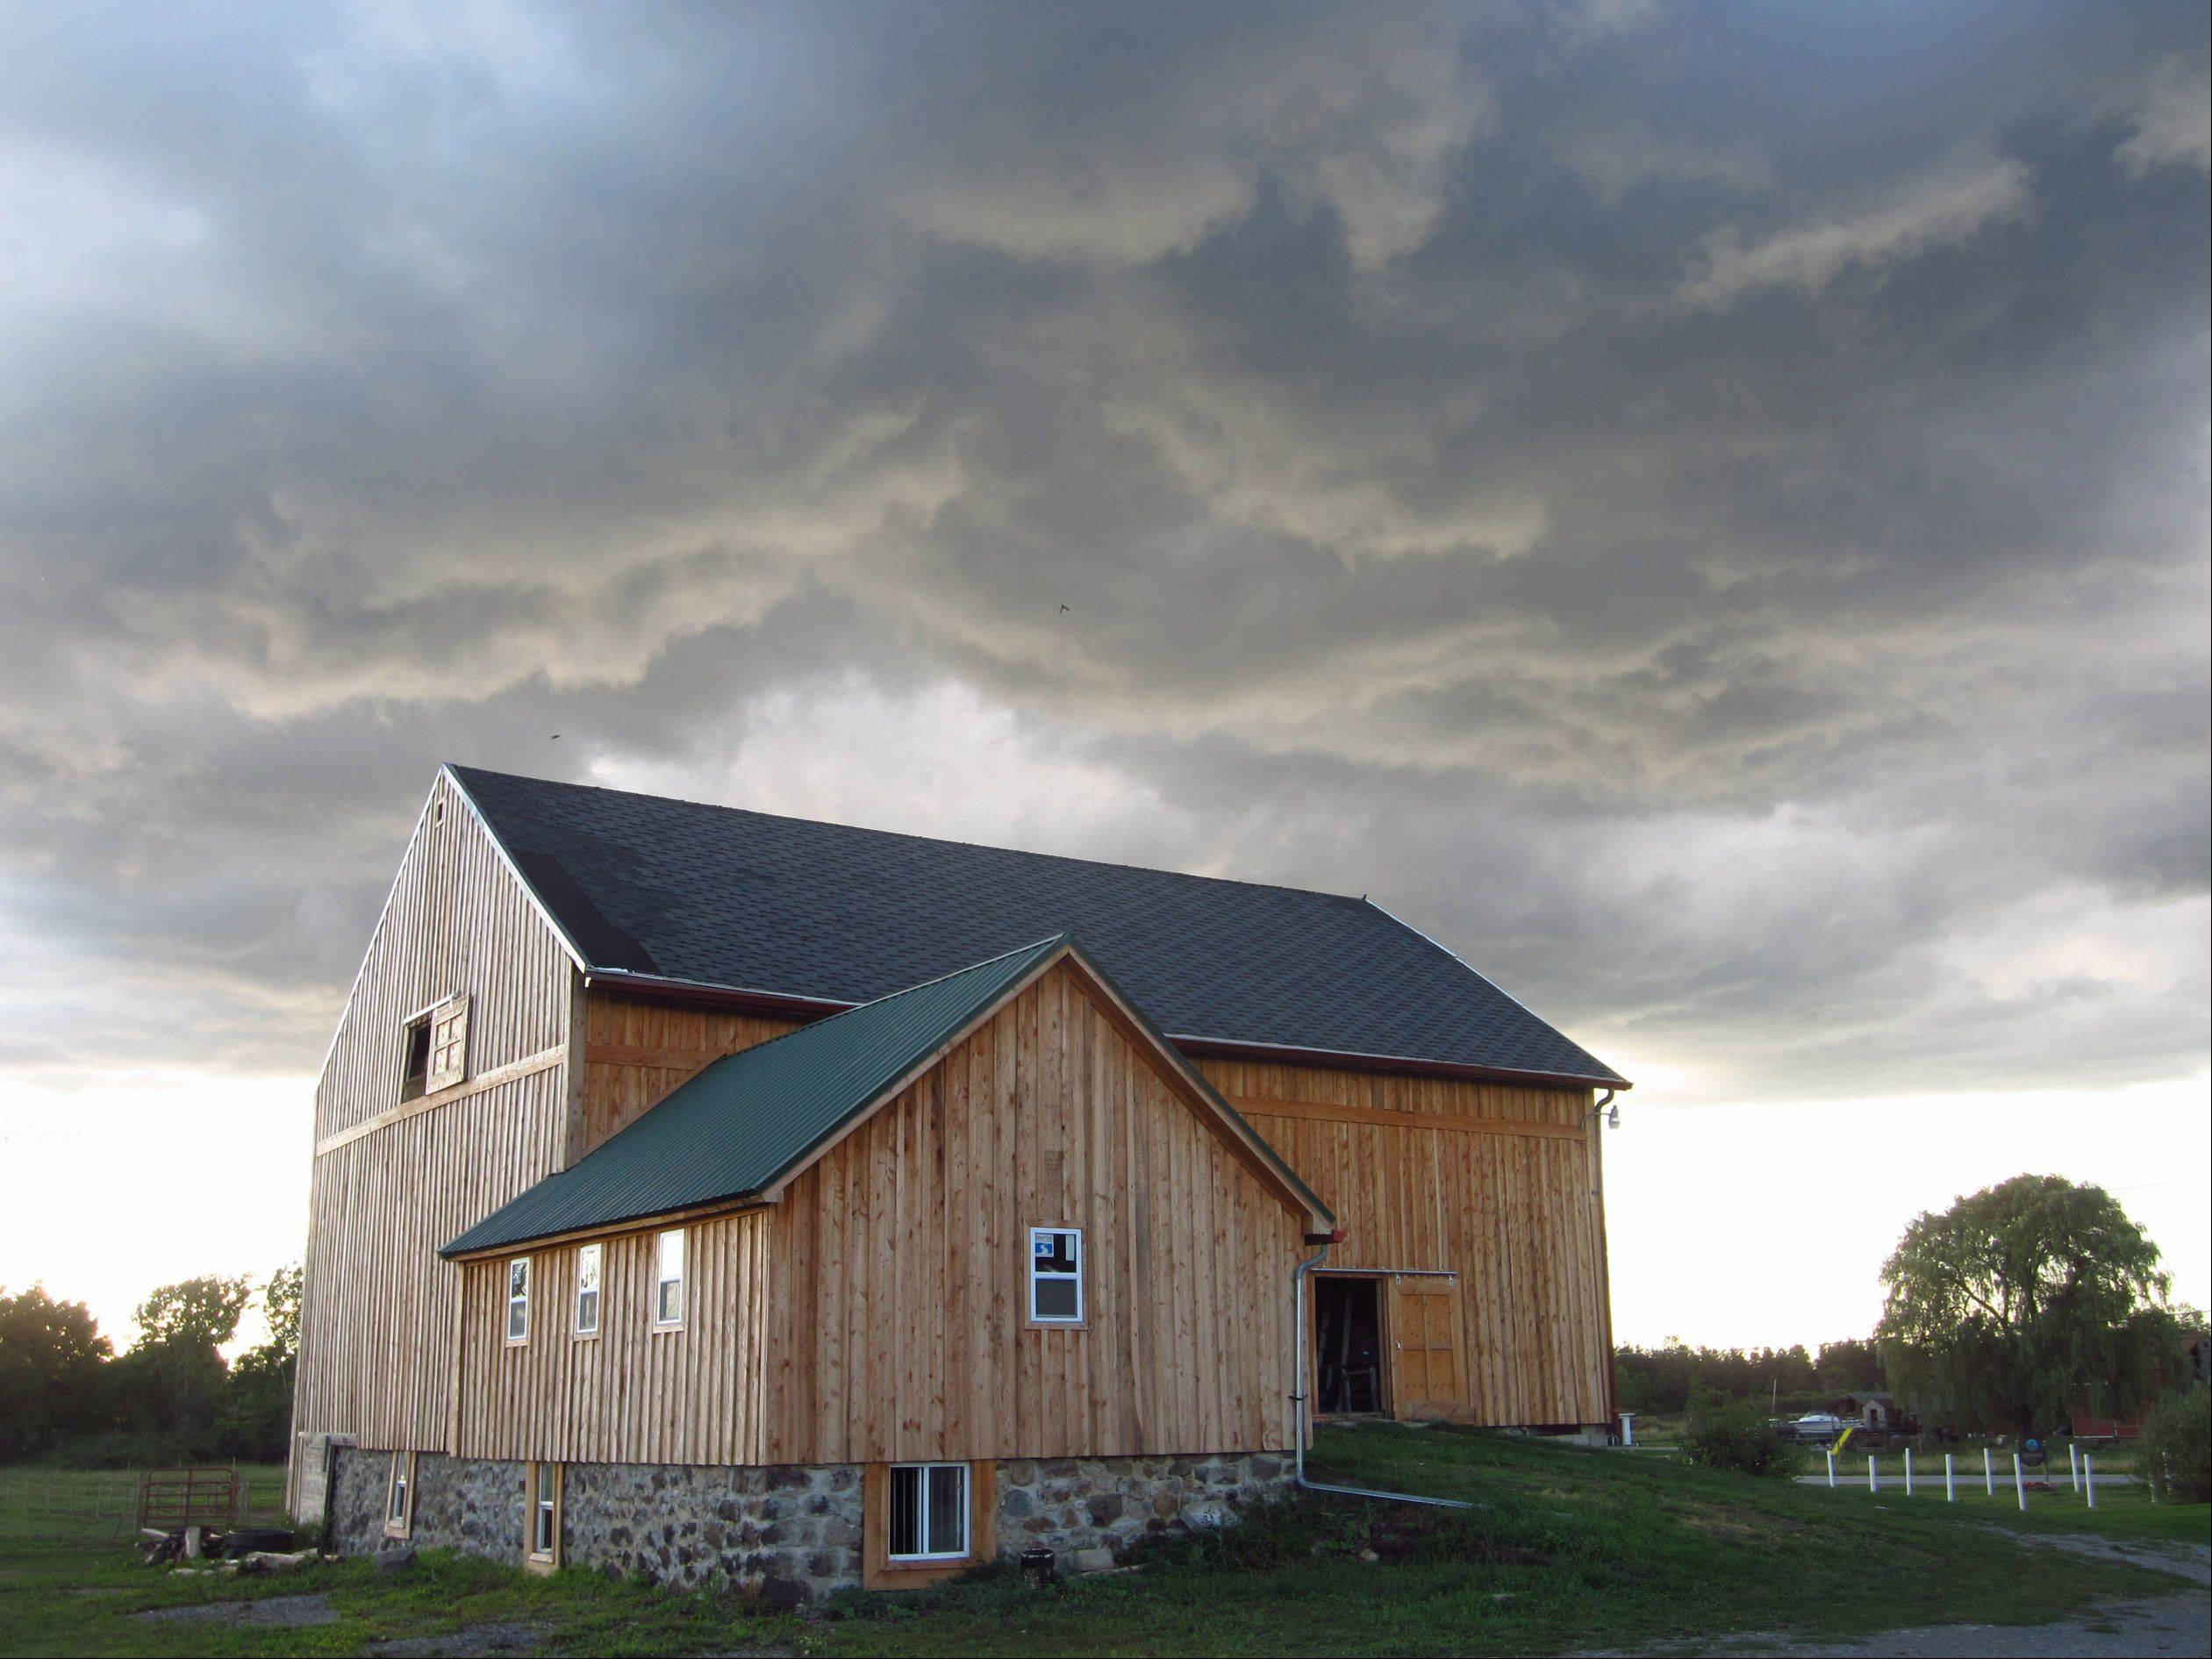 Ominous clouds appear over a newly sided barn at Applewood Farm in Alden, NY in August.